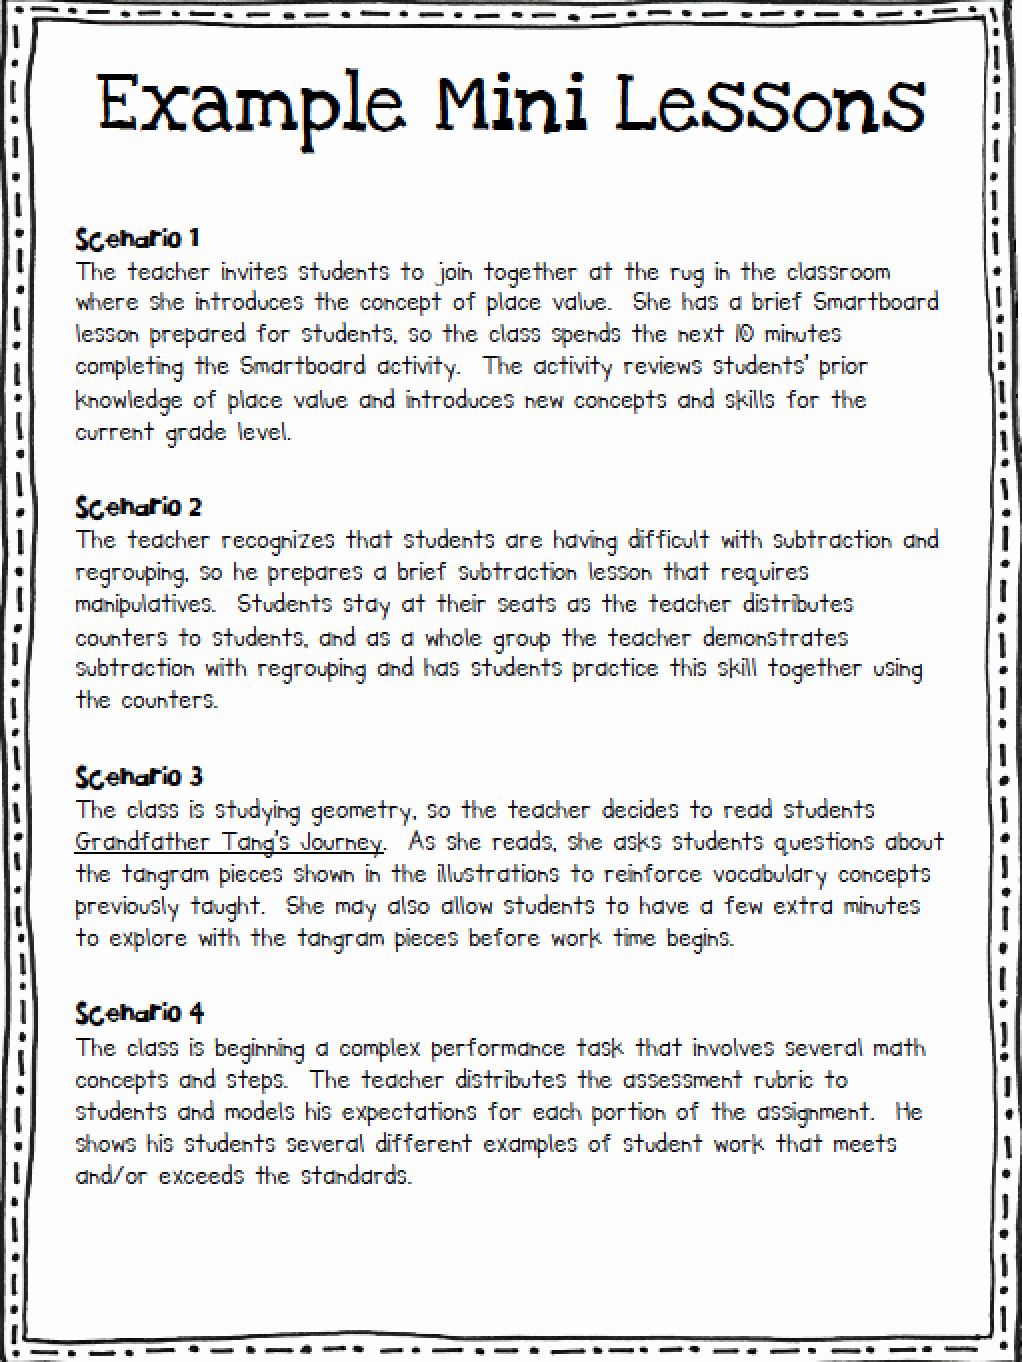 Math Workshop Lesson Plan Template Best Of Math Workshop In the Elementary Classroom ashleigh S